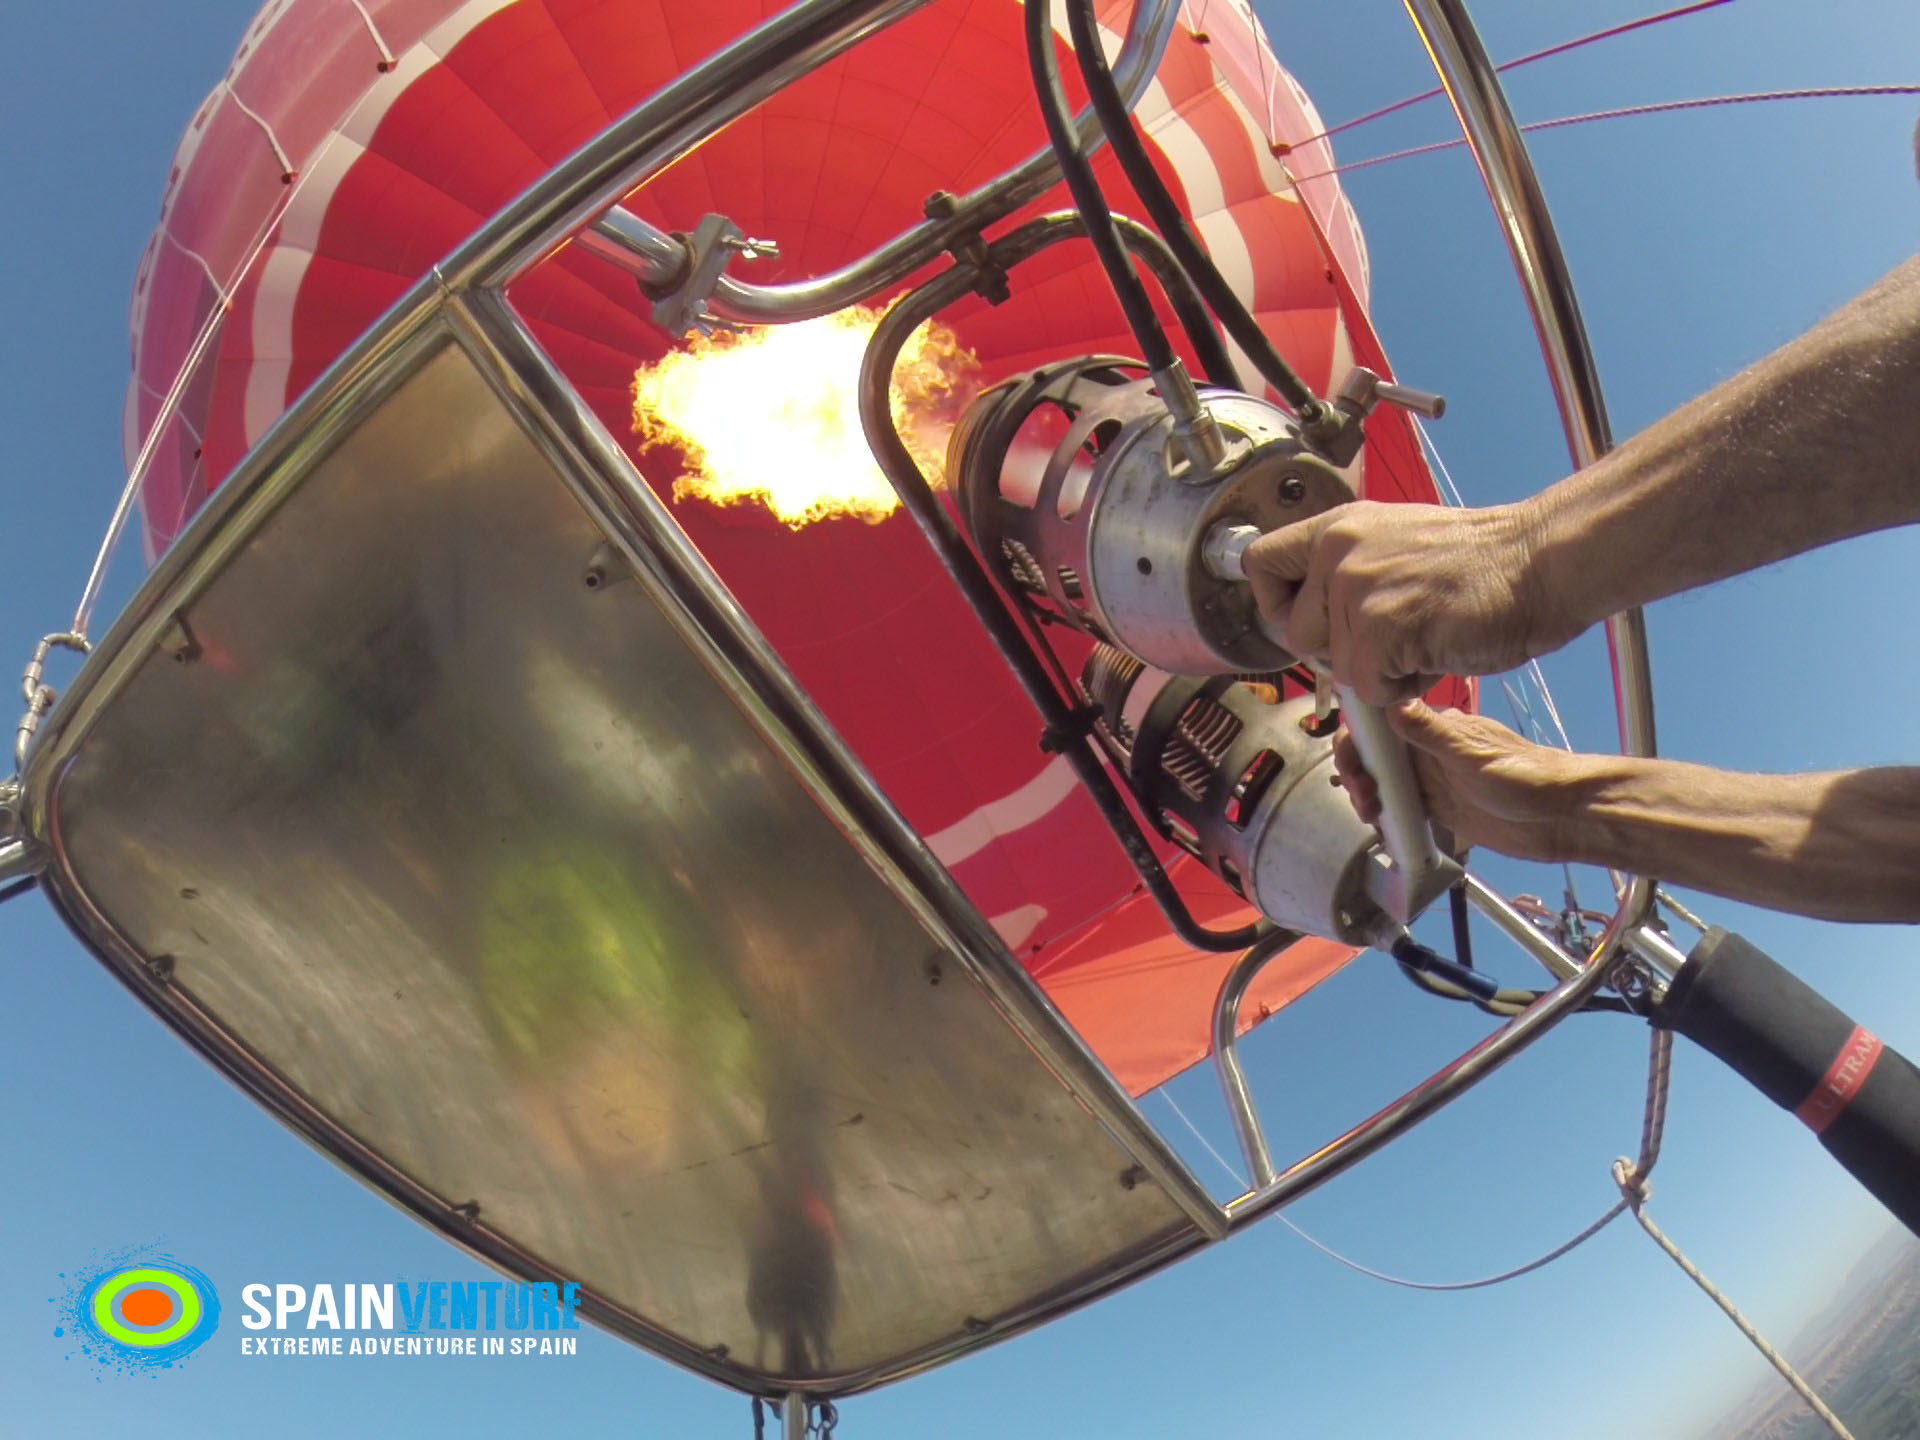 spainventure-hot-air-balloon-flight-vuelo-en-globo-aerostatico en andalucia